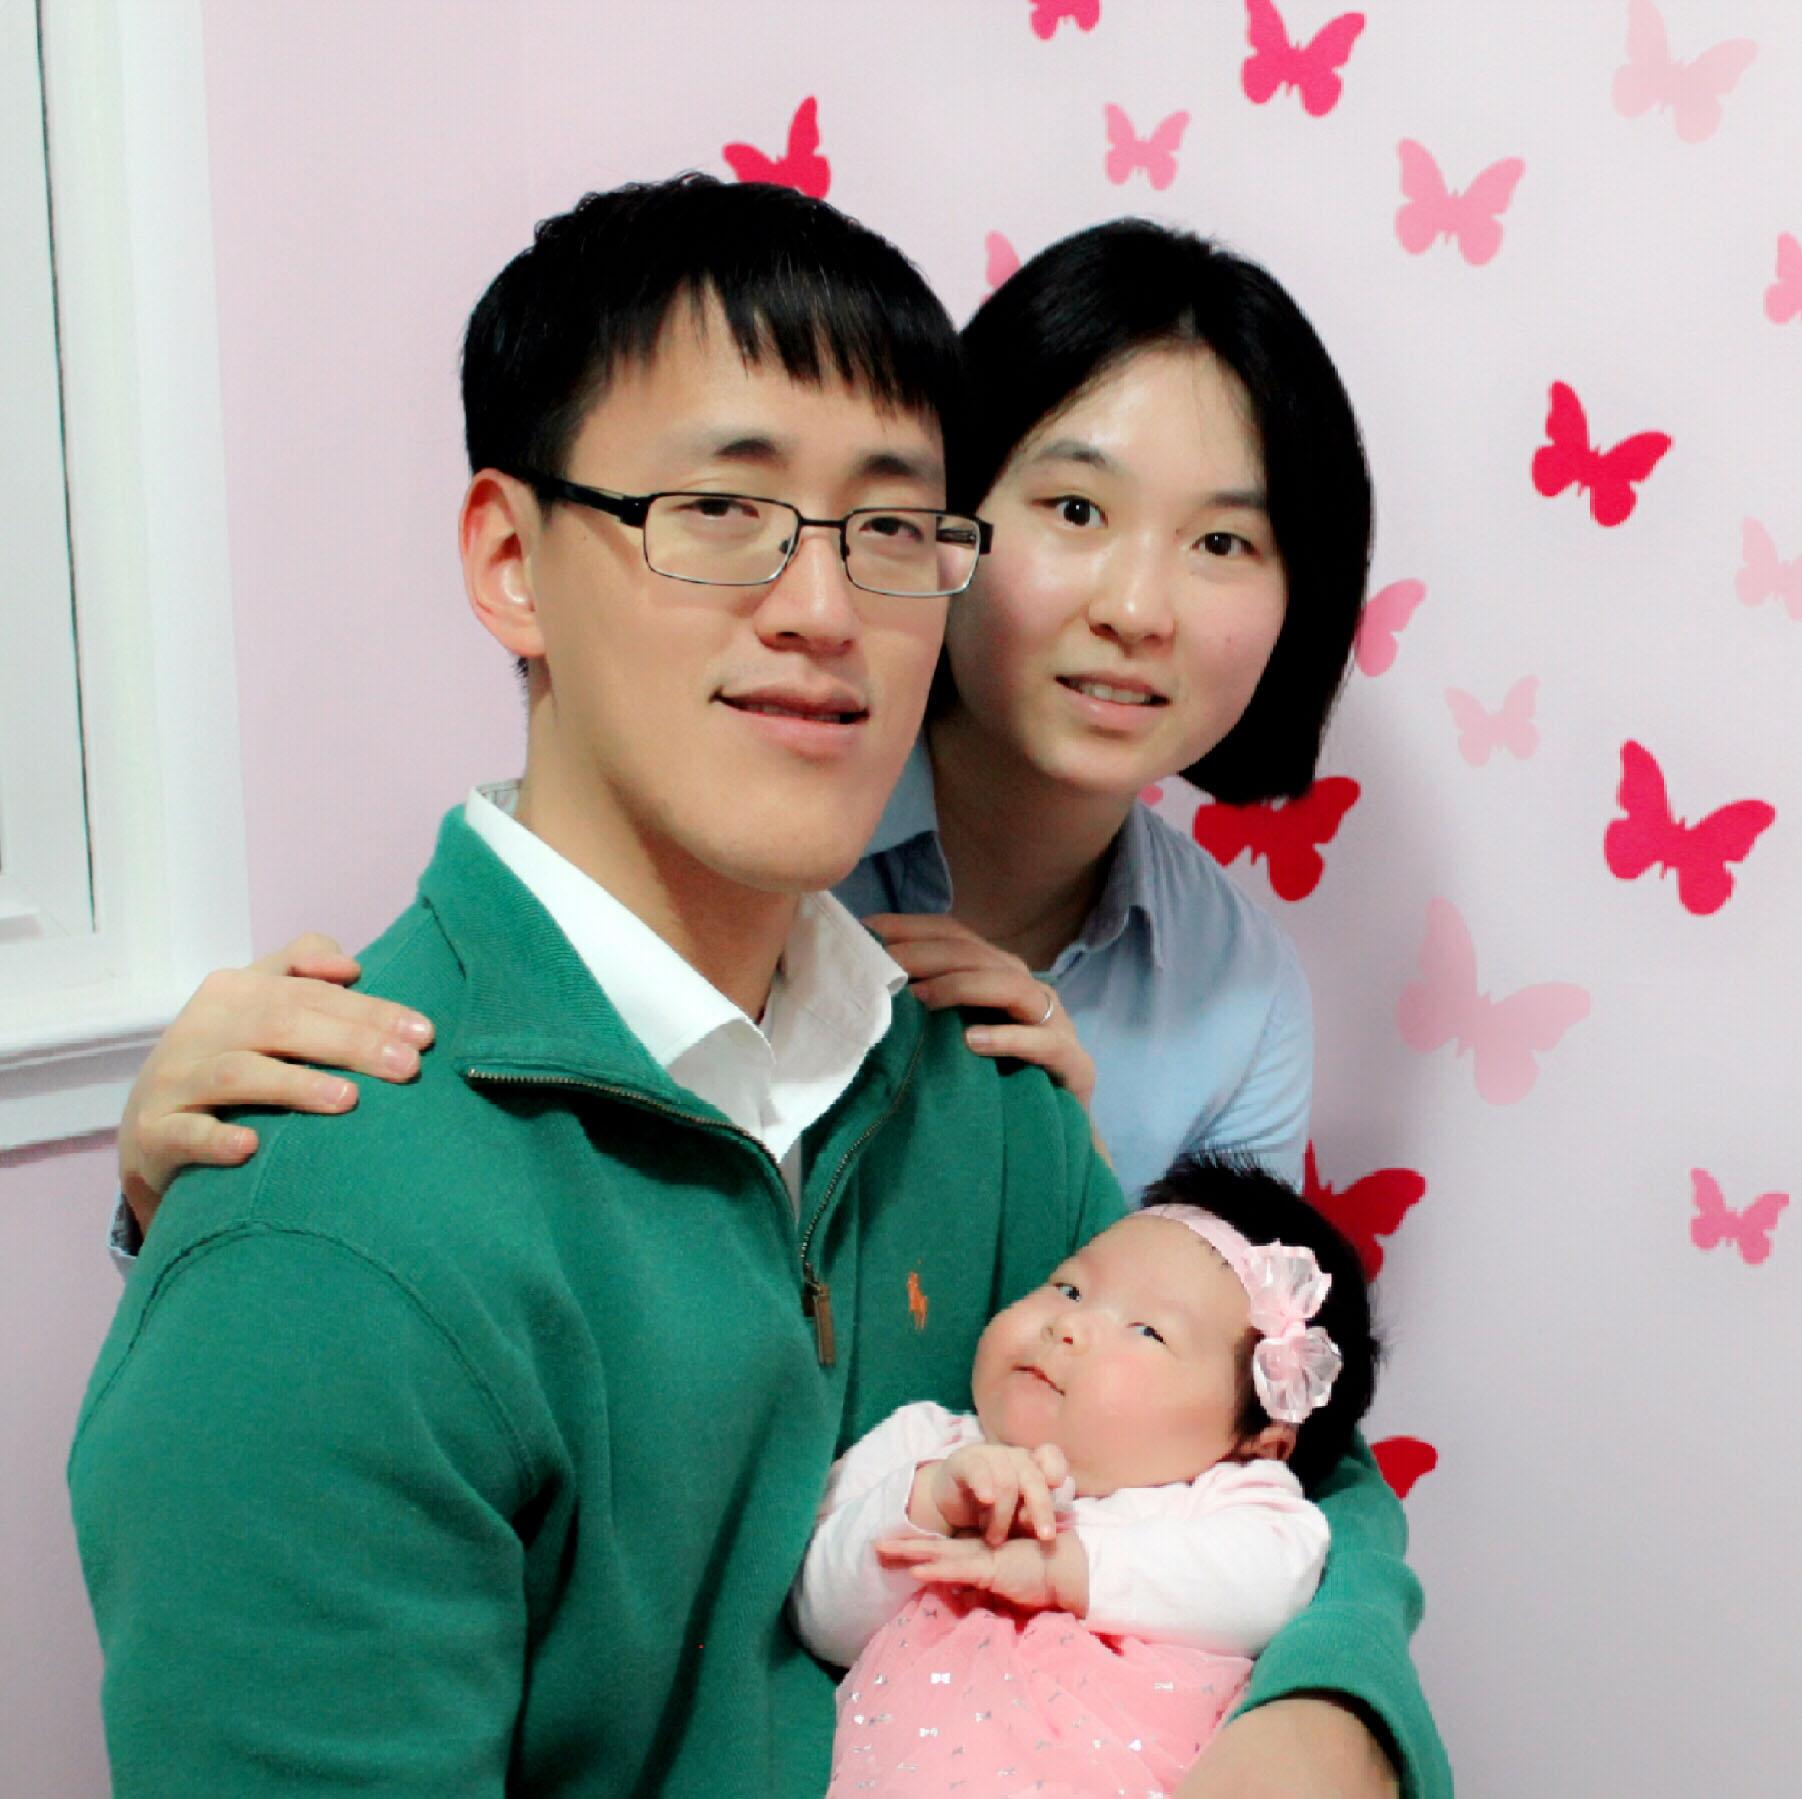 Math teacher Jae Lee and his wife welcome their baby daughter, Haven Lee, who was born last fall.